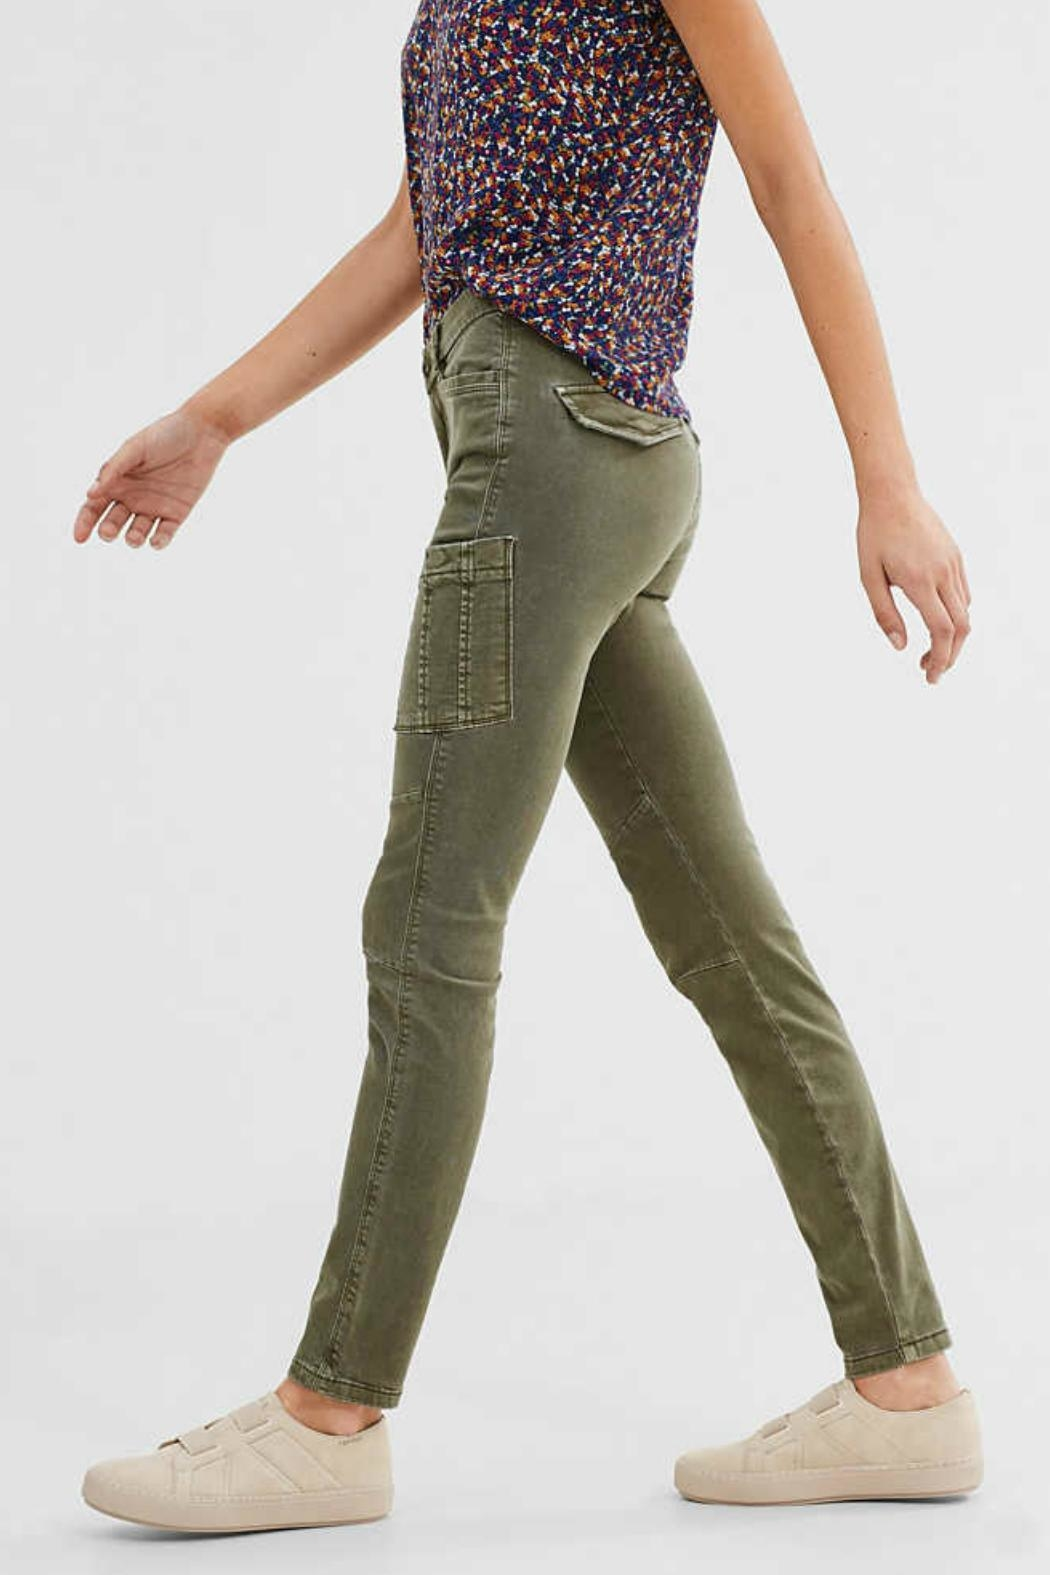 ESPRIT jewel Khaki Woven Pants - Side Cropped Image